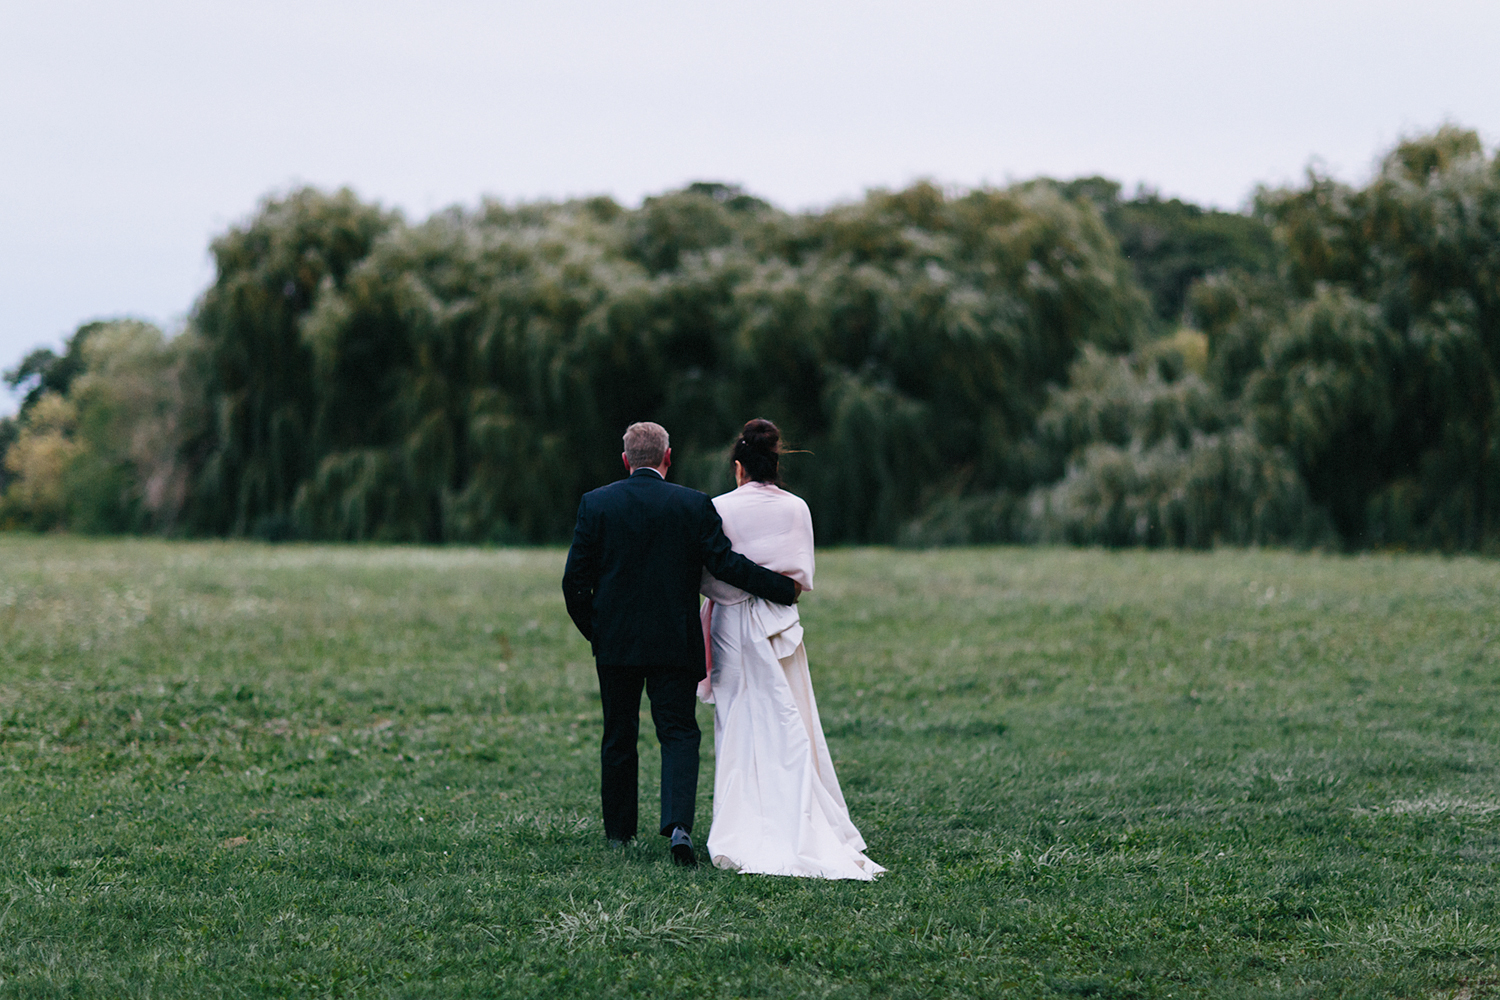 Best-Wedding-Photographers-in-Niagara-on-the-Lake-Toronto-Port-Dalhousie-curling-club-venue-inspiration-photojournalistic-documentary-style-candid-real-couples-portraits-walking-in-wilderness-and-willow-trees-EPIC.jpg